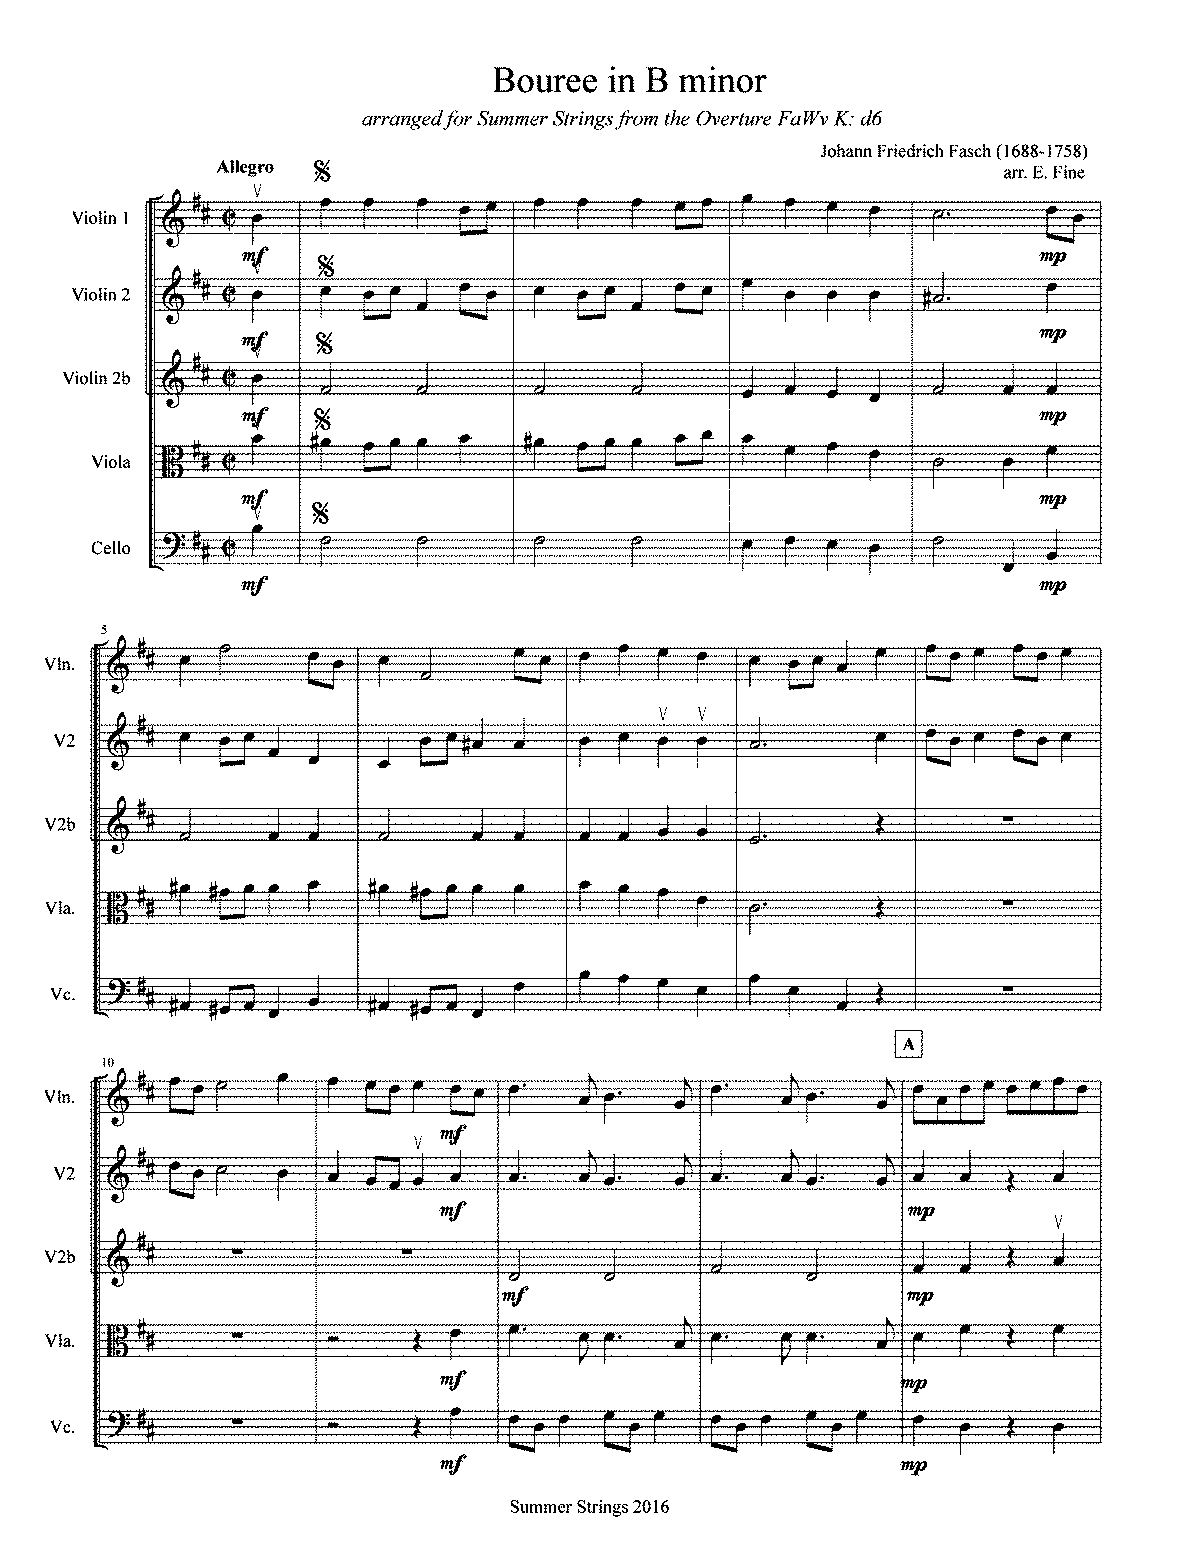 PMLP500964-Fasch Bouree for String Orchestra Score and Parts.pdf